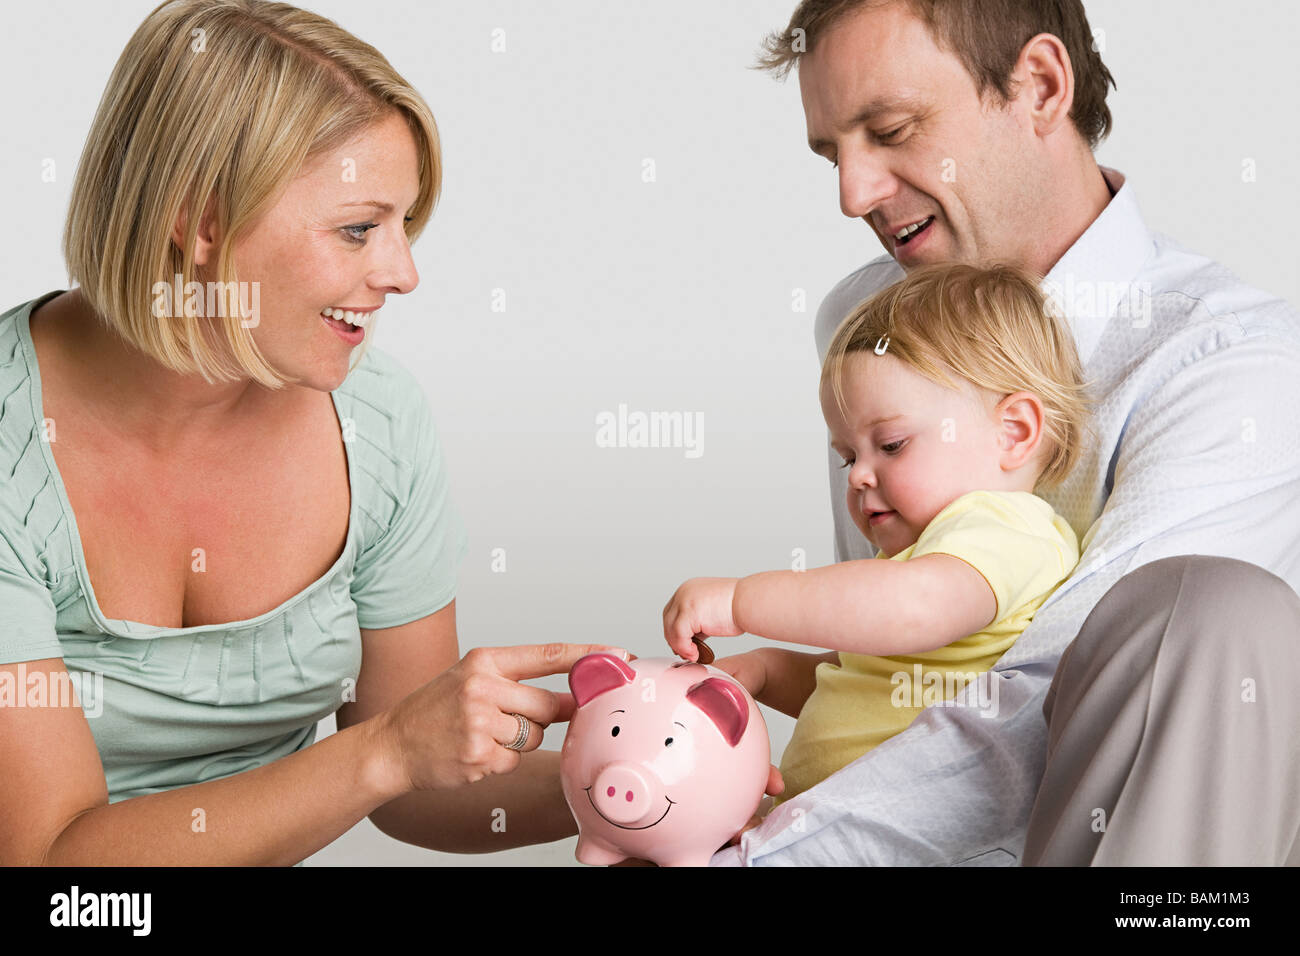 Parents and baby with piggy bank - Stock Image